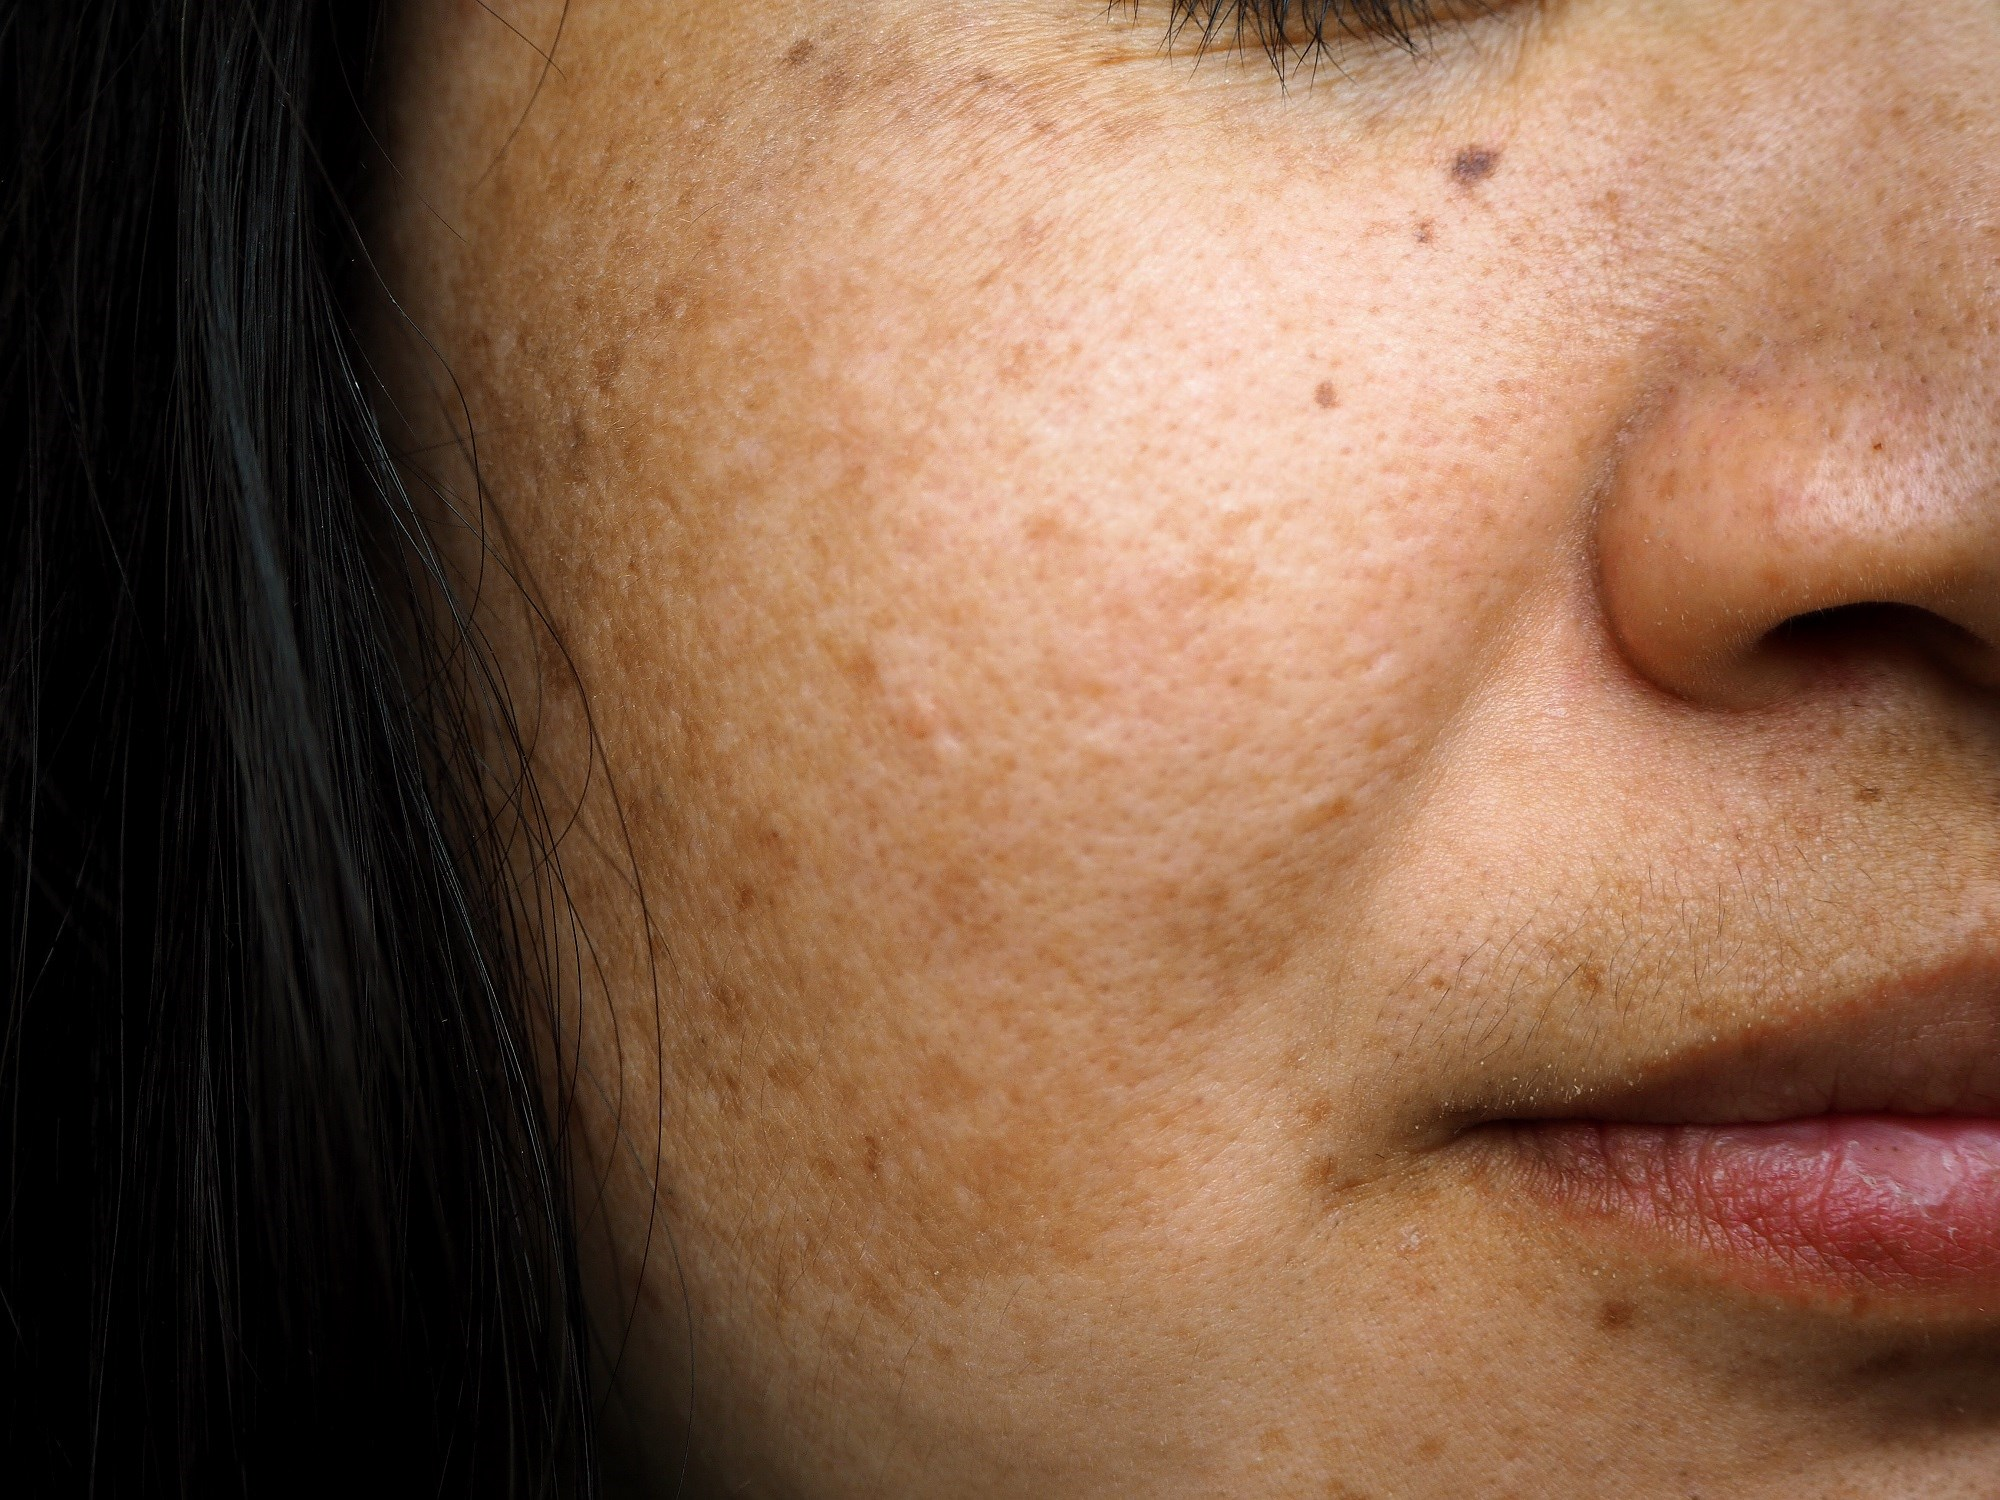 Topical Liposomal Hydroquinone vs Conventional Treatments for Melasma: Which Is Better?